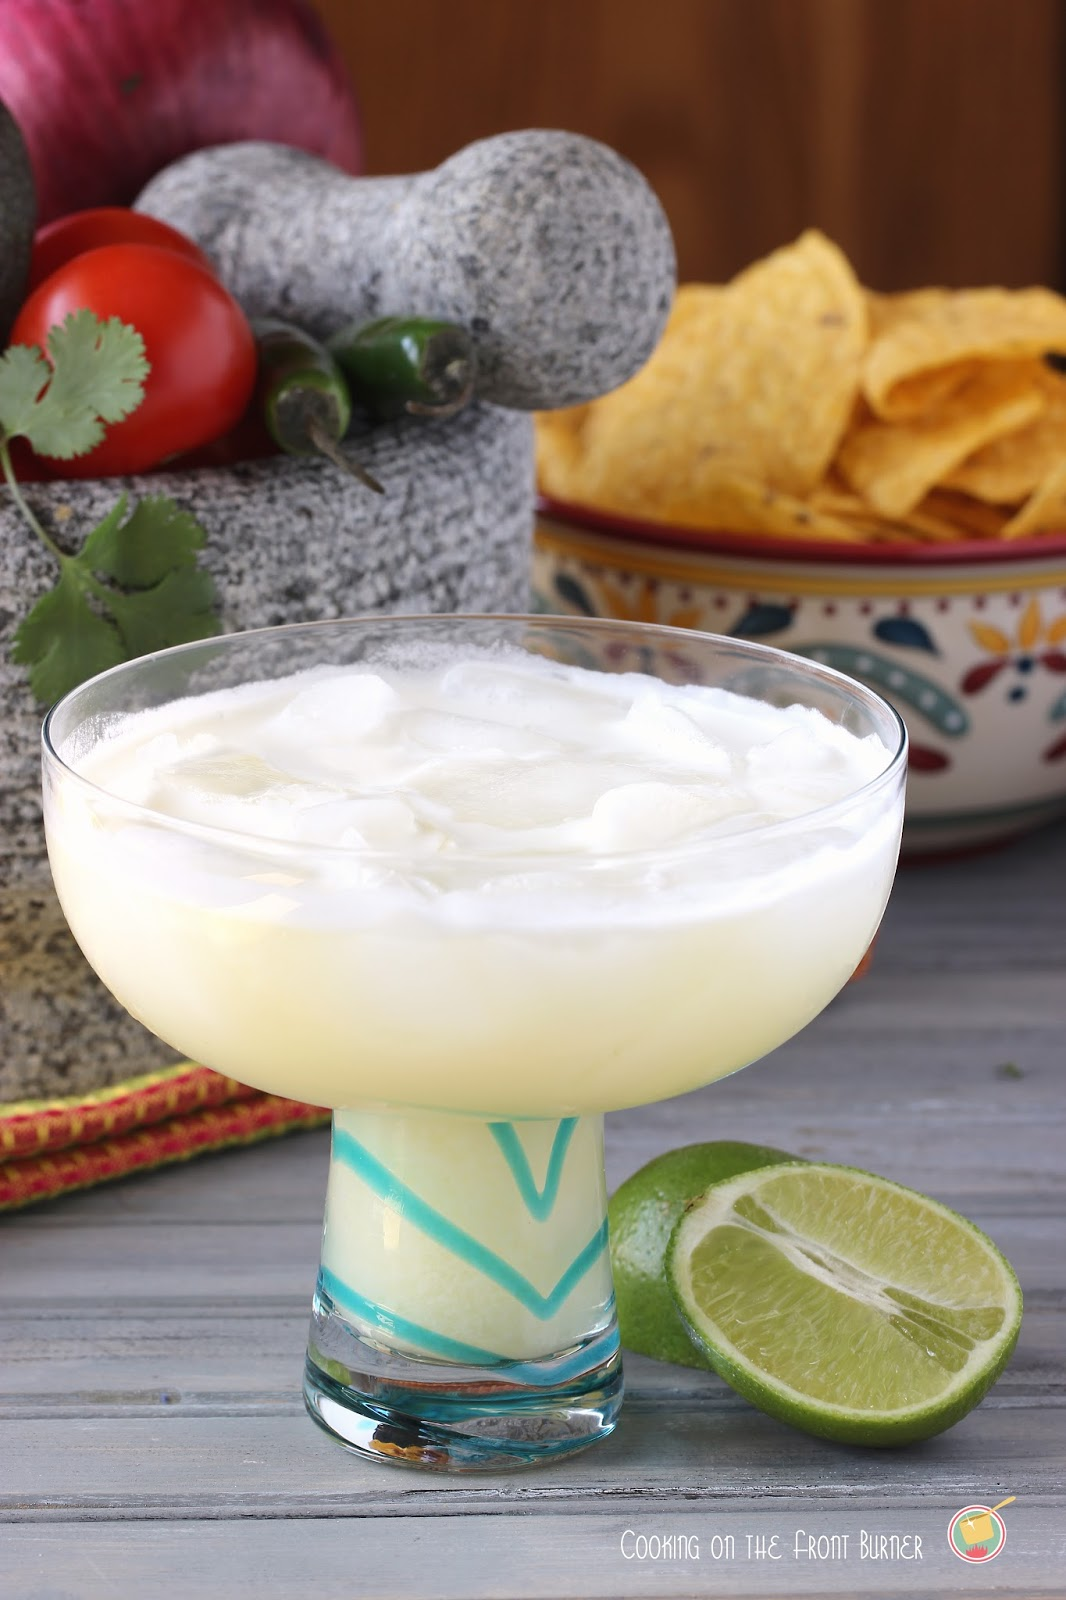 Colada Margarita - a twist combining a pina colada and margarita | Cooking on the Front Burner #cincodemayo #cocktails #margarita #pinacolada